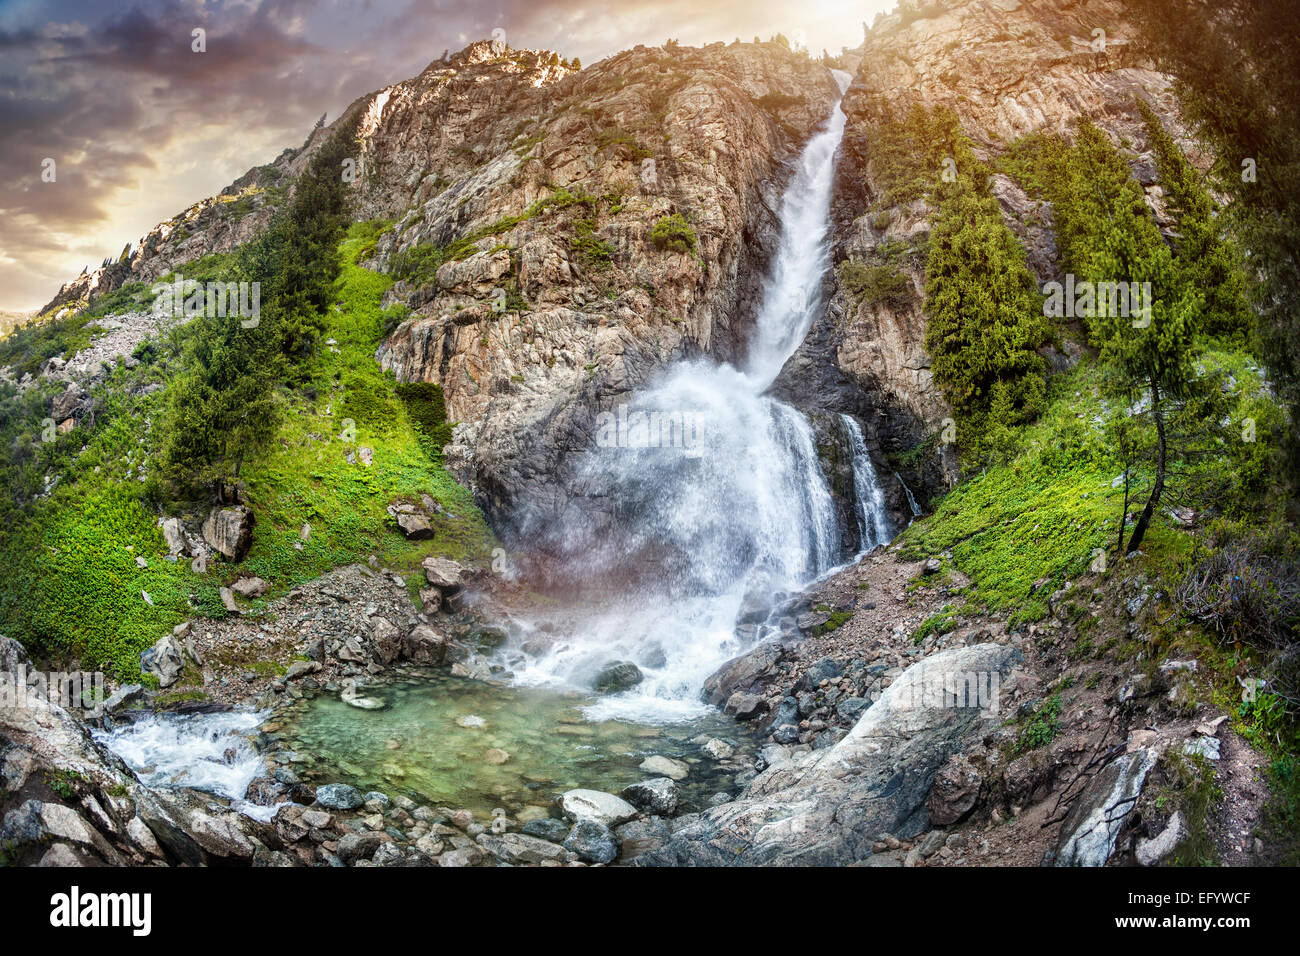 Burhan Bulak Mountain waterfall in Dzungarian Alatau, Kazakhstan, Central Asia - Stock Image